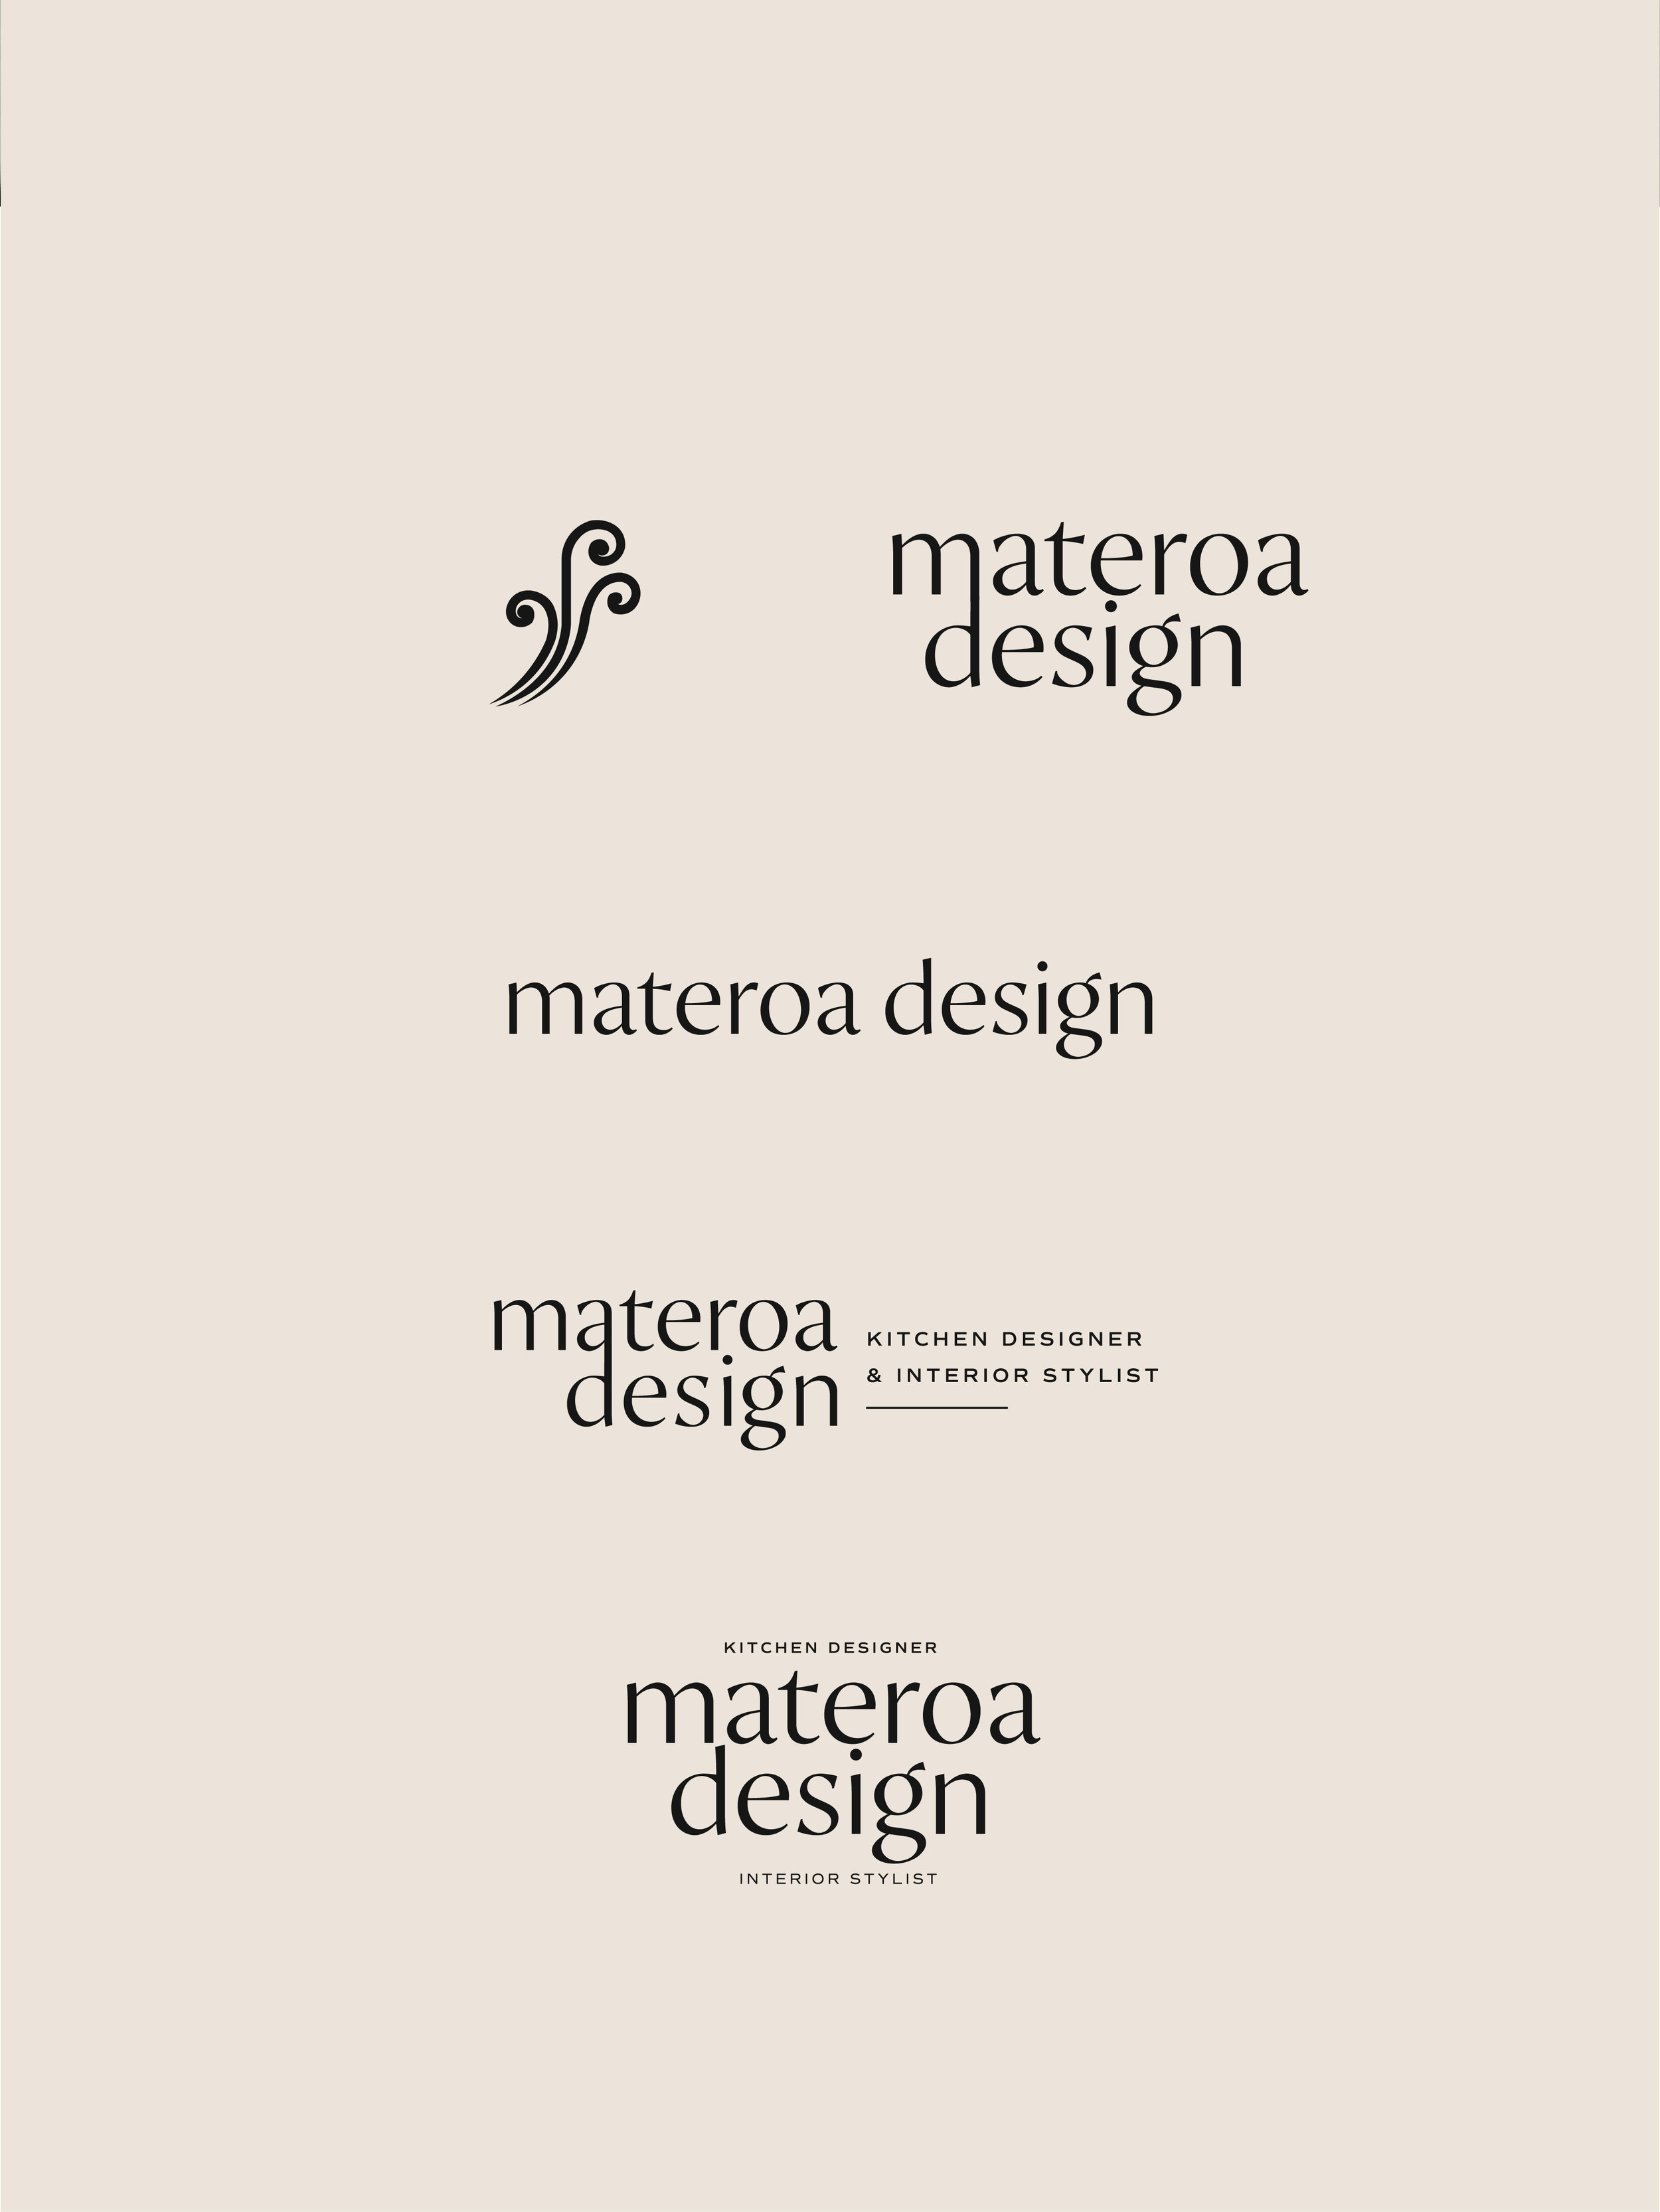 Materoa Design logo elements - by January Made Design